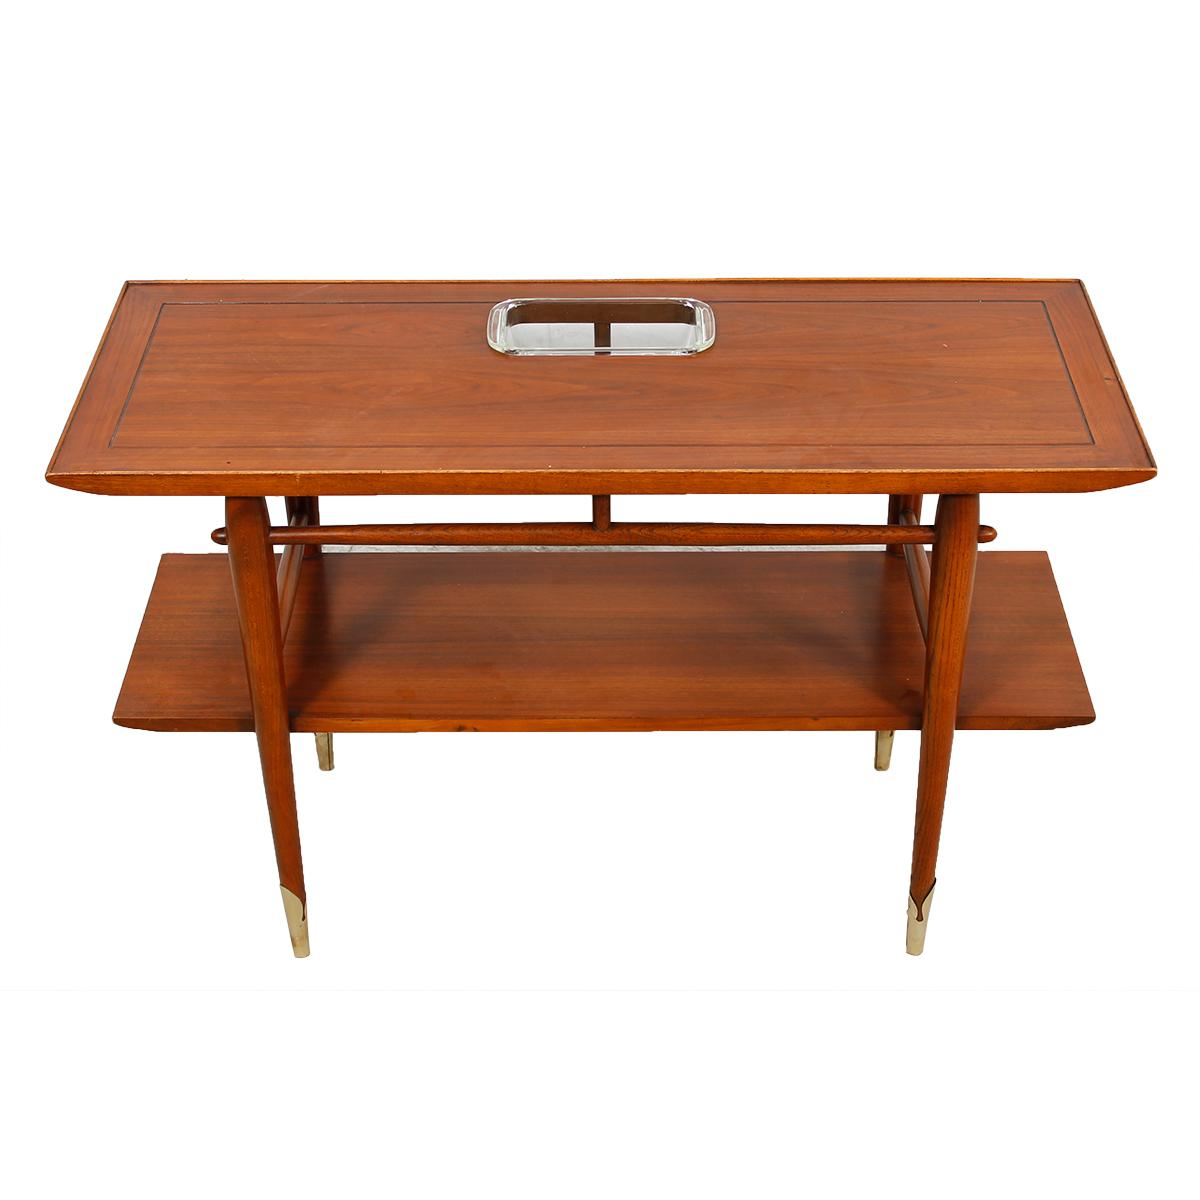 Mid Century Modern Console Table: Mid-Century Modern Console With Shelf